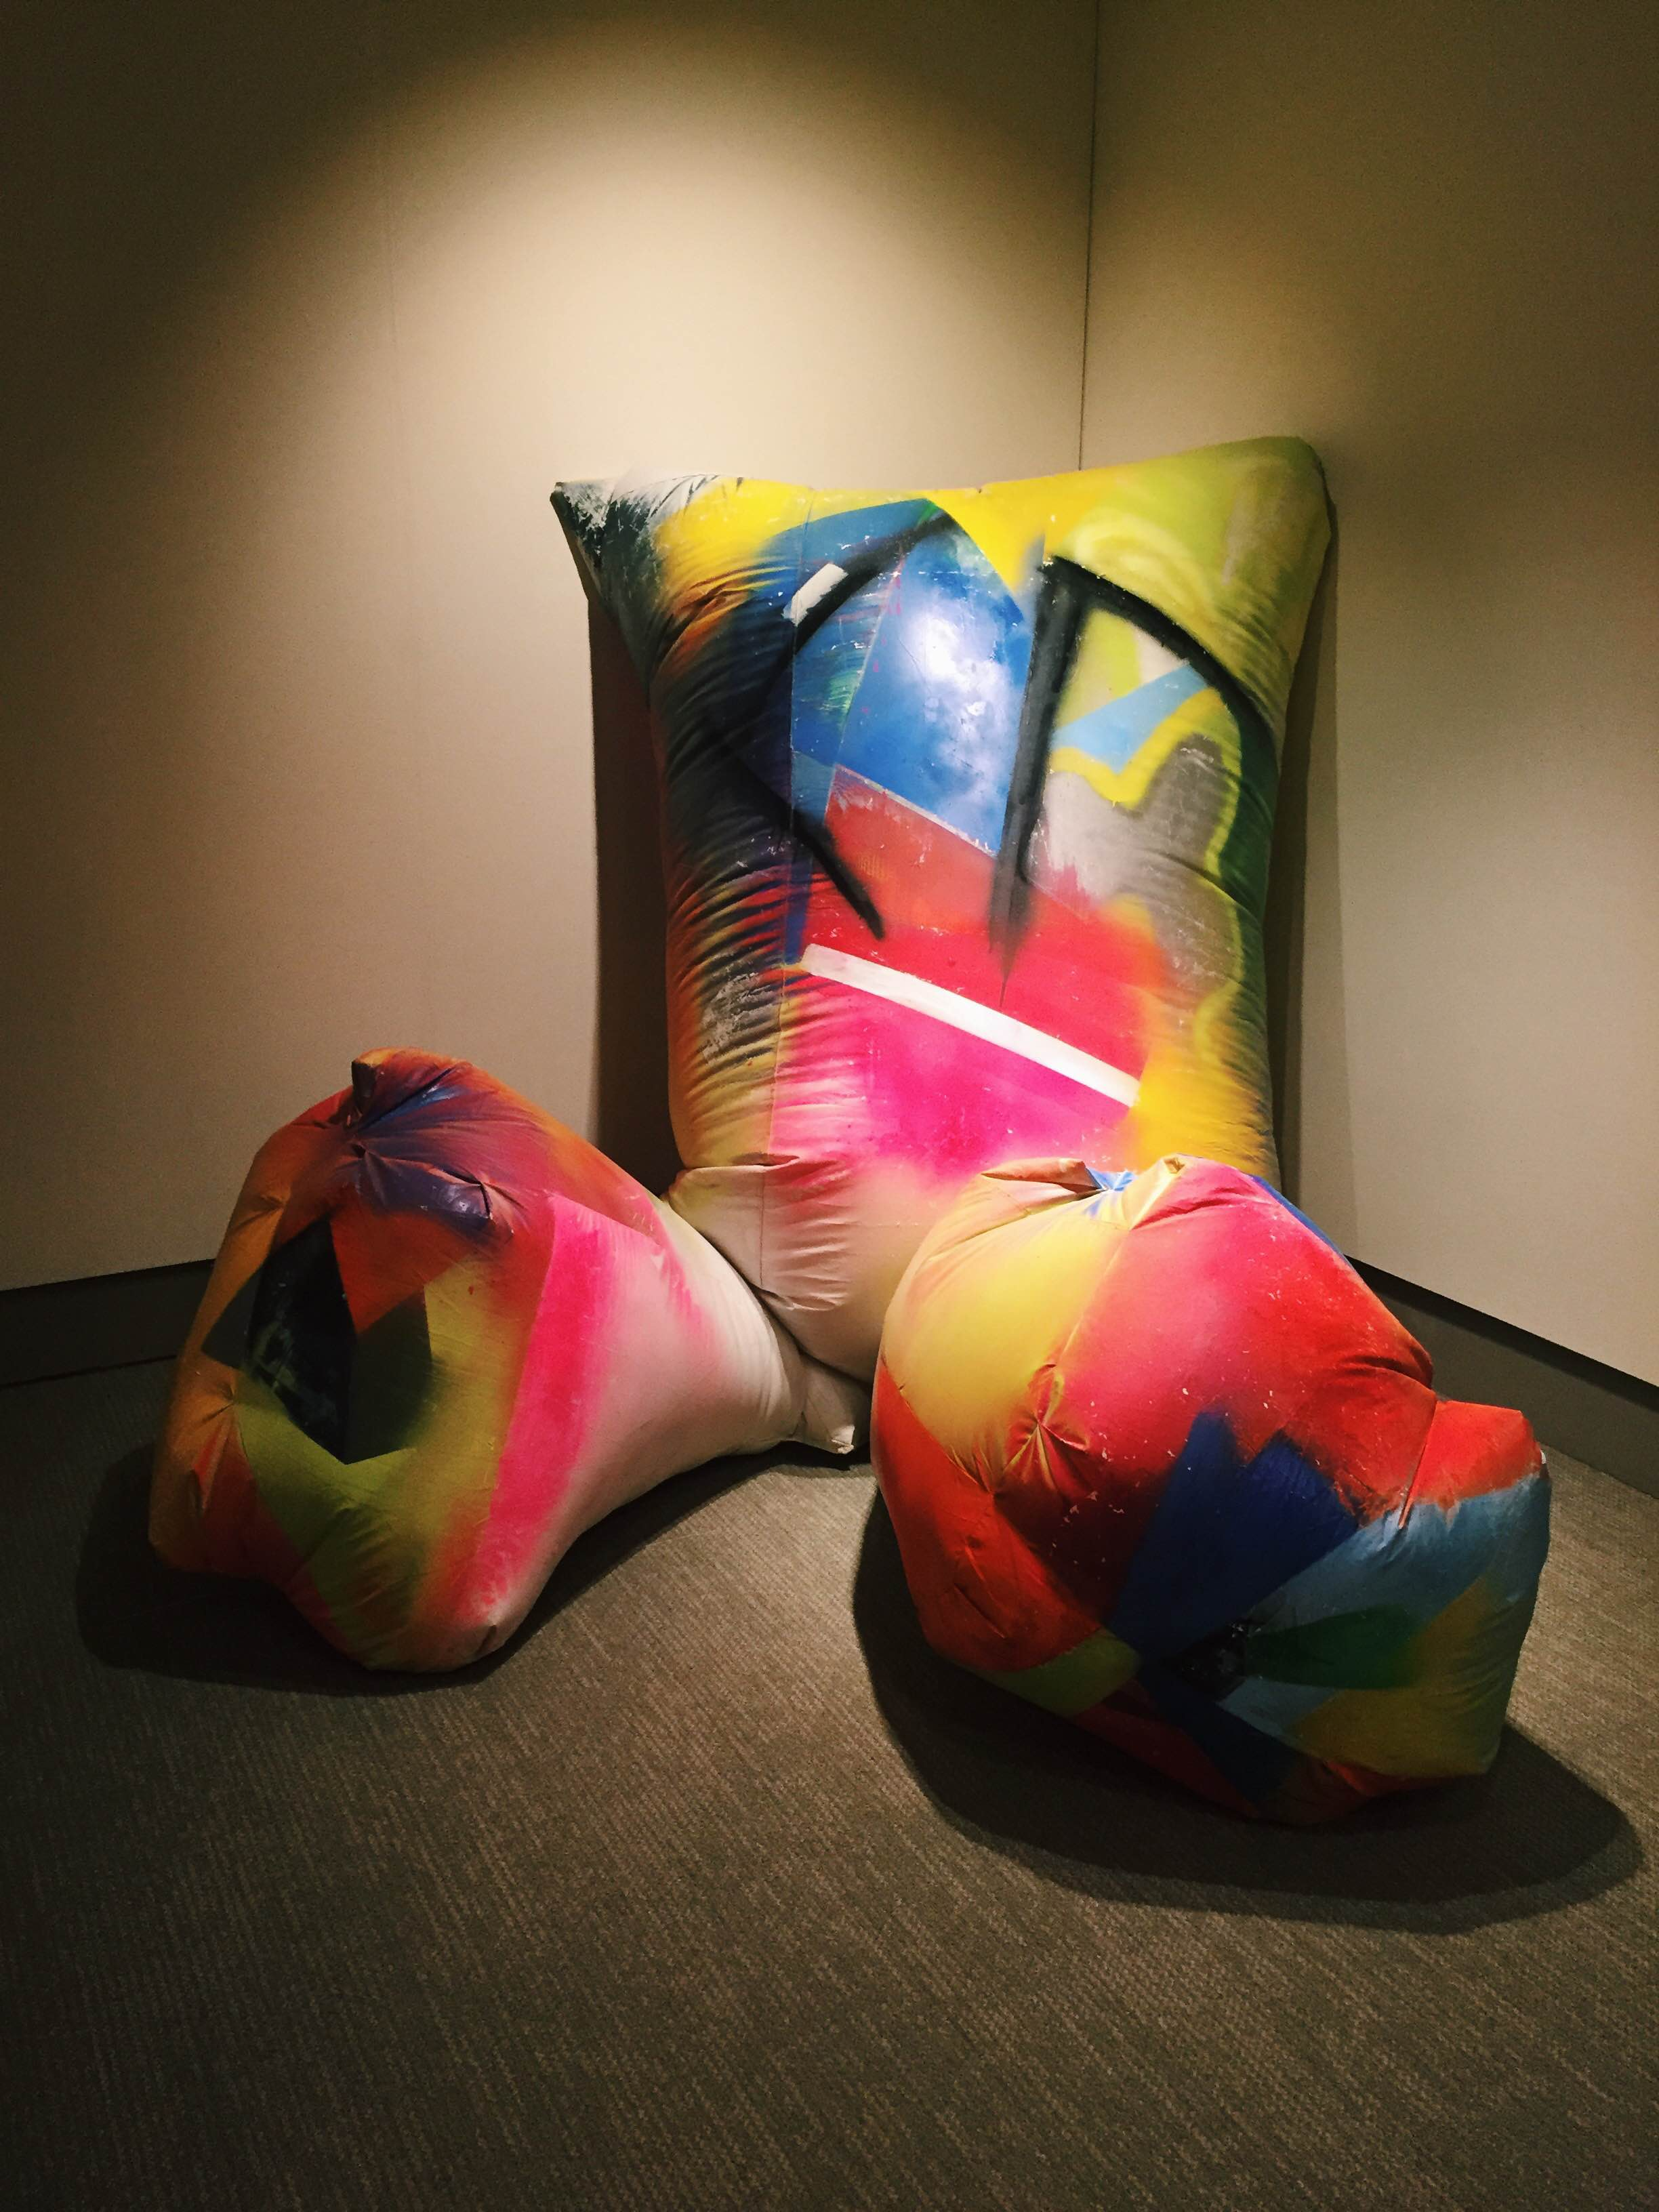 """The William Benton Museum of Art debuted a new exhibit titled """"Blow Up: Inflatable Contemporary art"""" on Thursday, June 2, 2016. (Megan Krementowski/The Daily Campus)"""